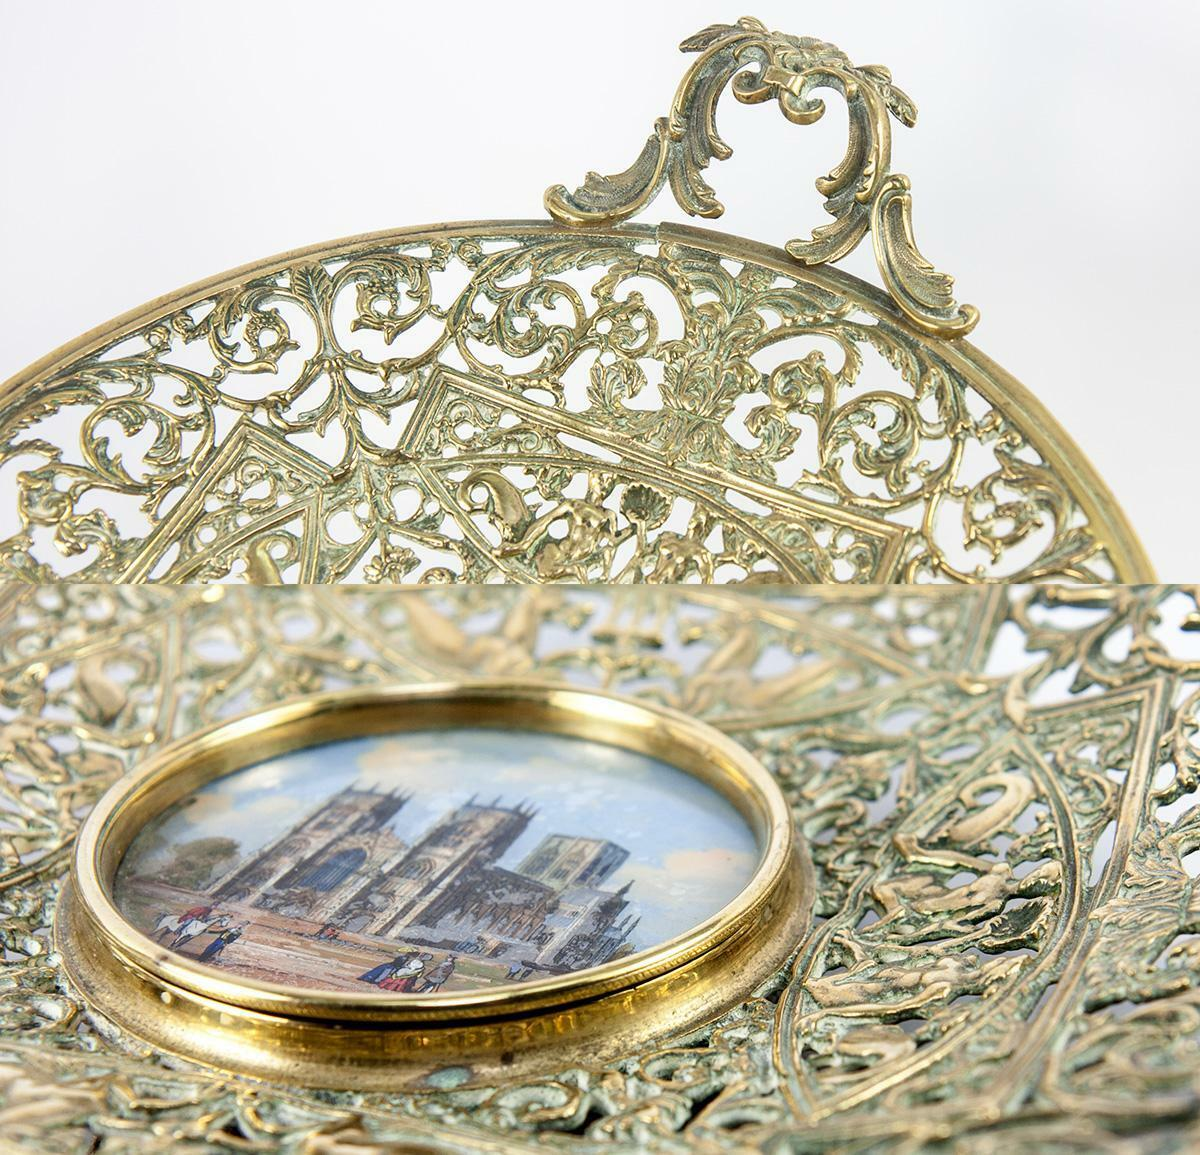 LG Antique Victorian Tazza, Eglomise Grand Tour Souvenir: York Minster Cathedral